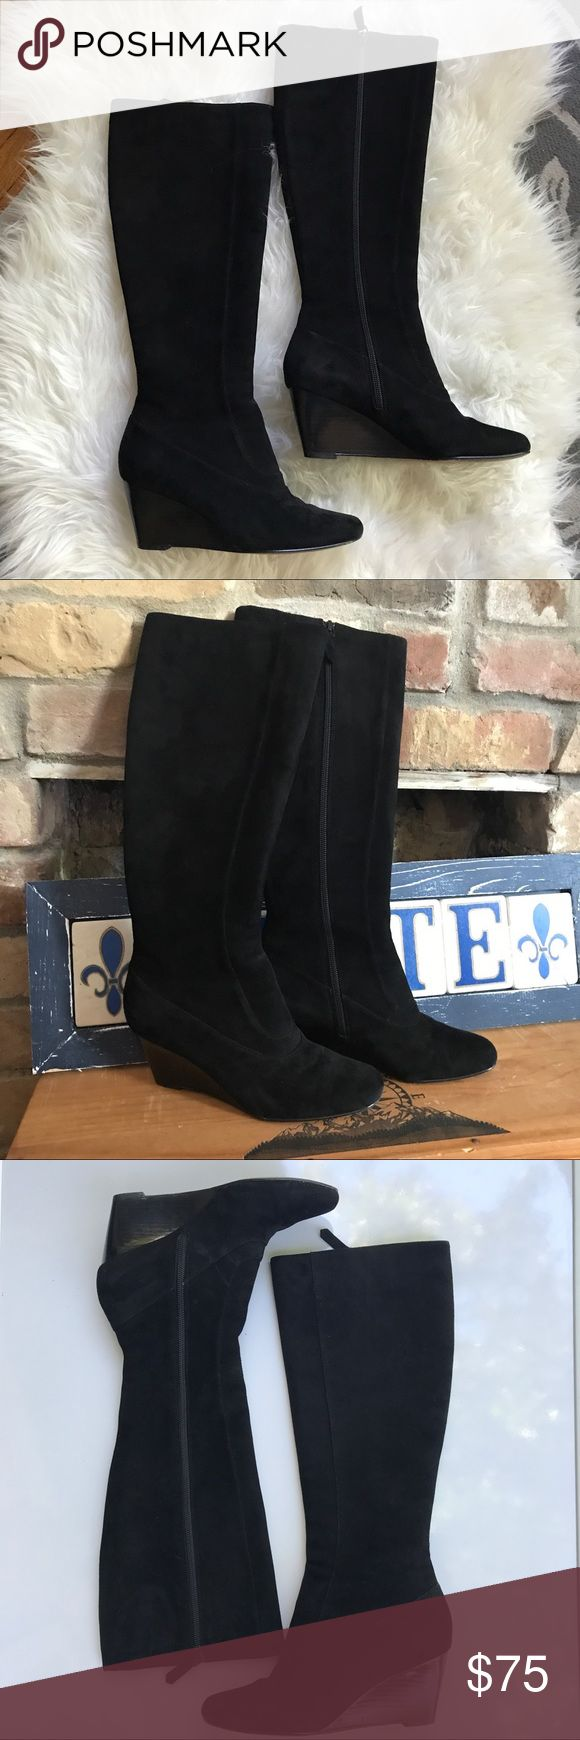 Cole Haan Black Suede Knee-high Wedge Boots 6 Luxurious knee-high suede boots. Softest suede! Very good pre-owned condition. Wear to the soles from walking but the upper and interior of the boot are very clean! Beautiful, high-quality boots with Nike air technology for comfort. 2.75 inch heel. Size 6. Cole Haan Shoes